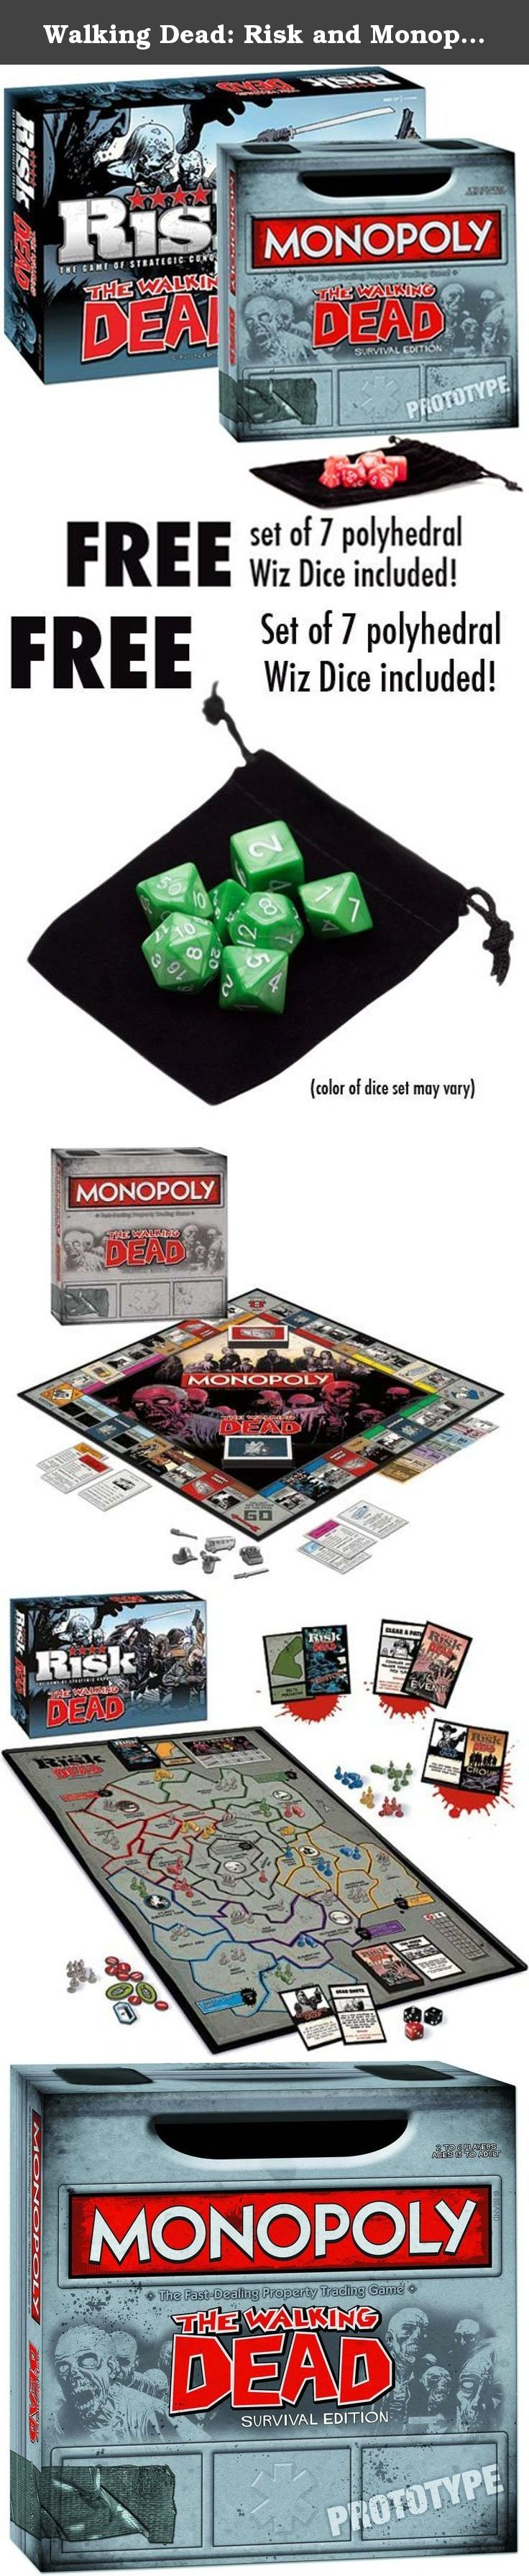 Walking Dead Risk and Monopoly Combo Pack with free Wiz